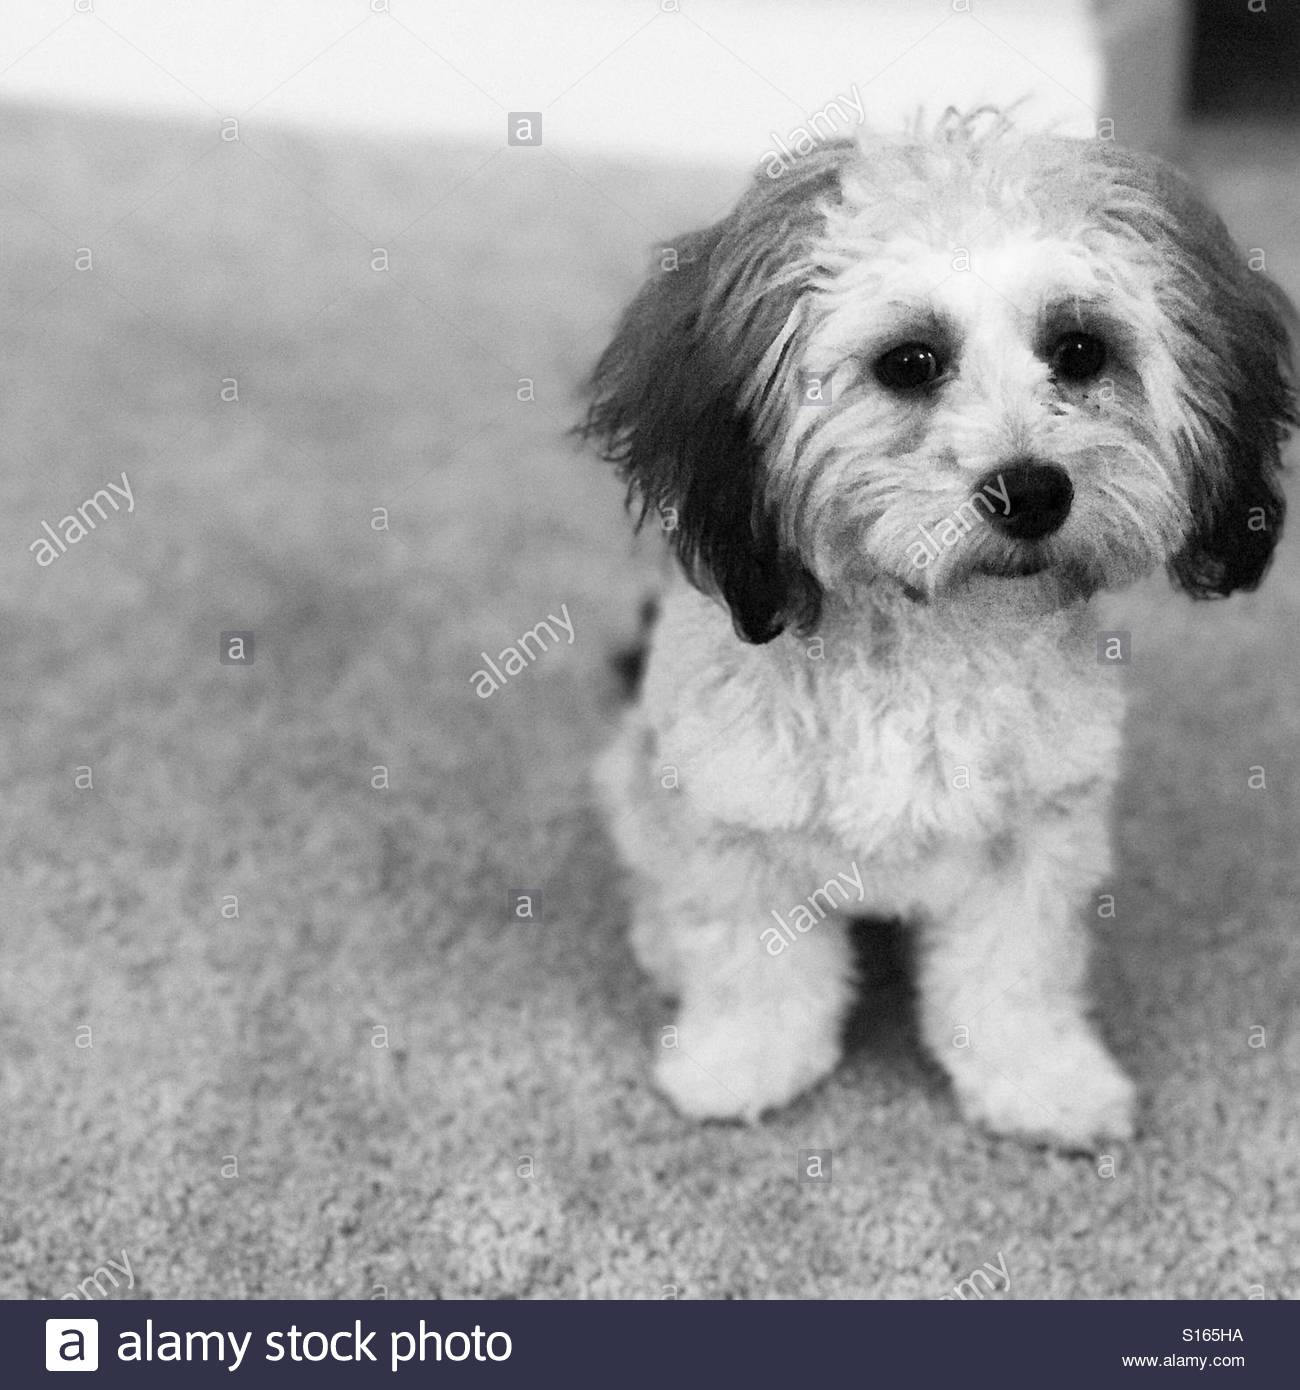 Black And White Photo Of Small Breed Shichon Puppy On